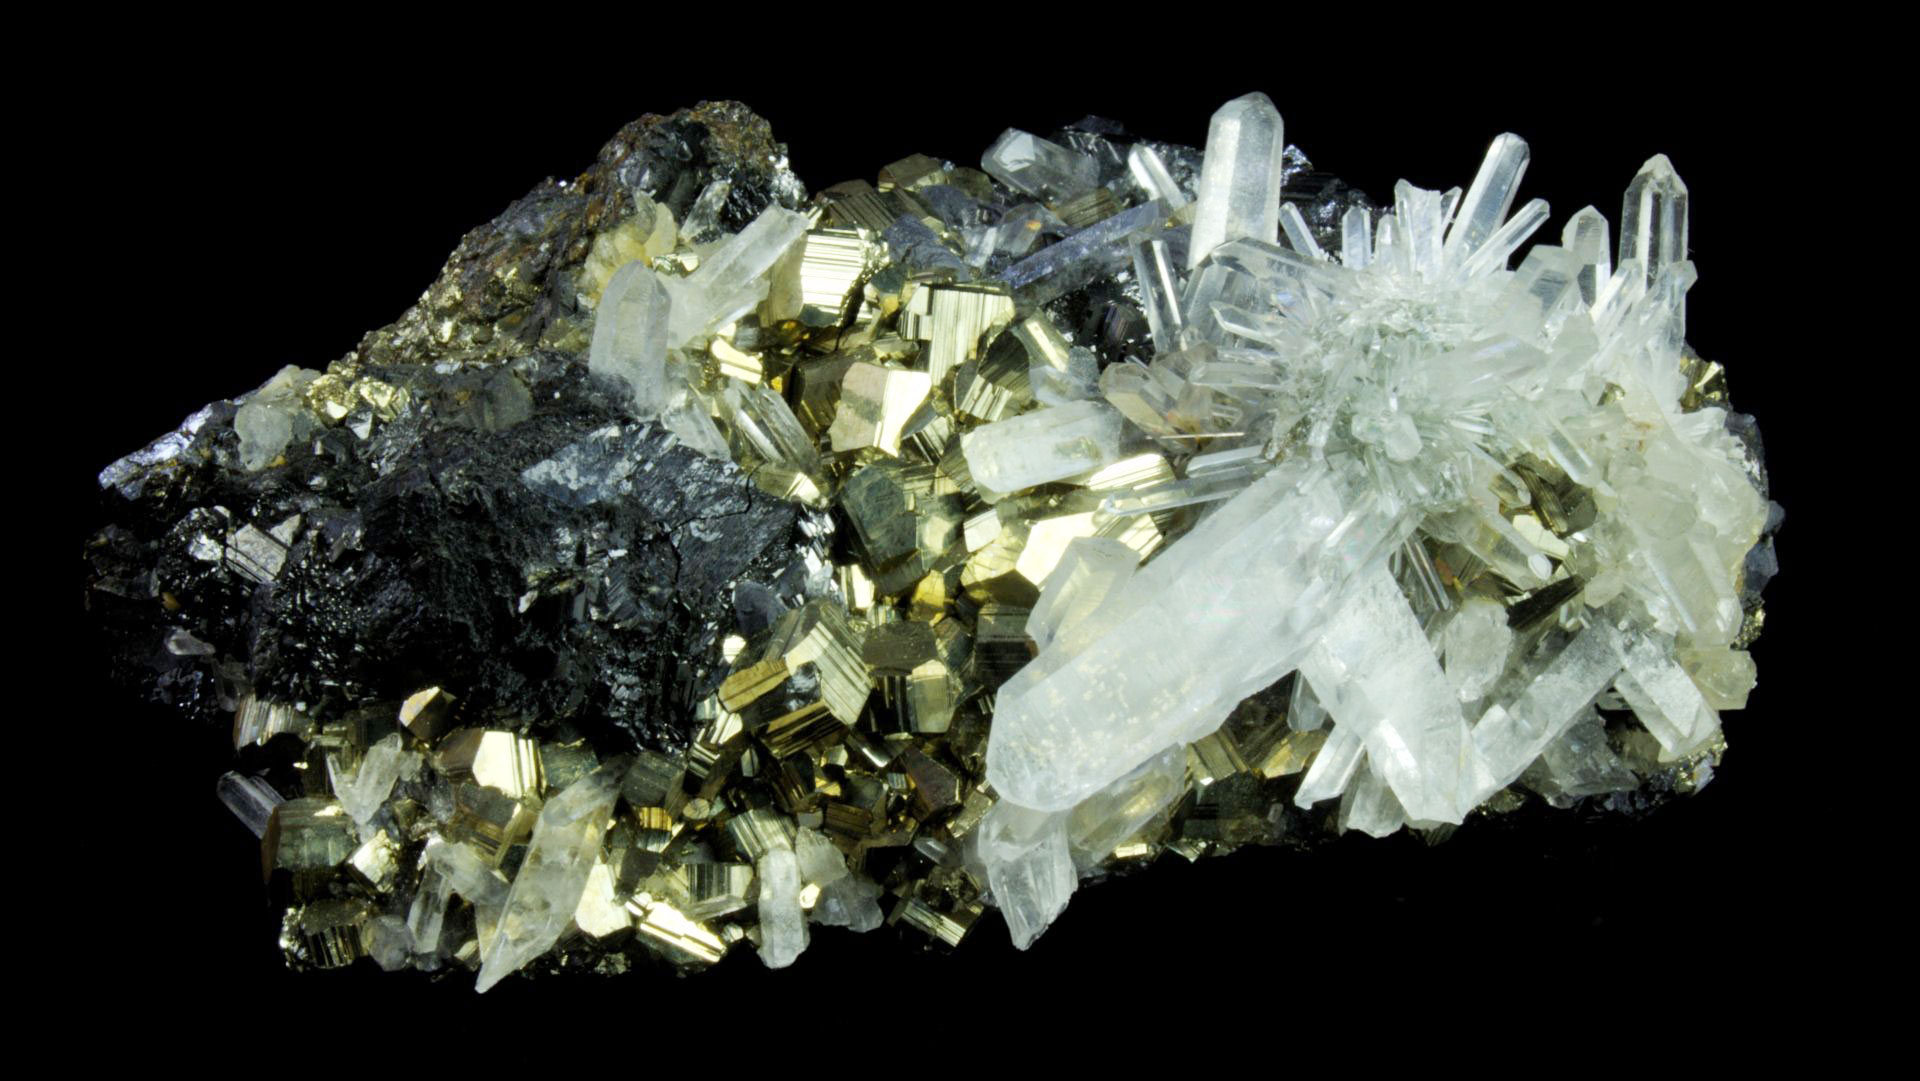 galena personals Lead is a chemical element with atomic number 82 and symbol pb.